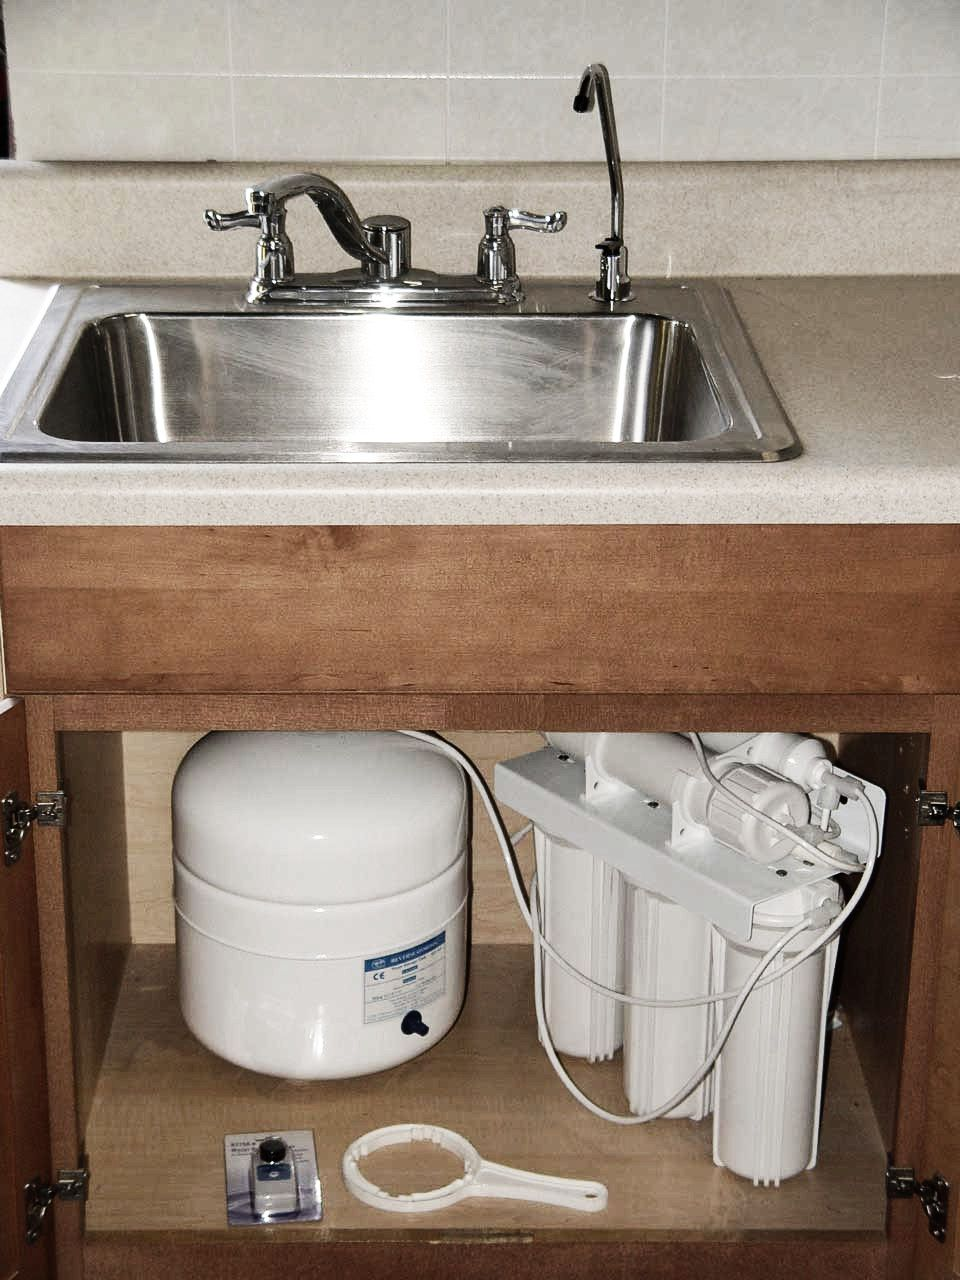 systems are used for drinking and cooking, and are usually